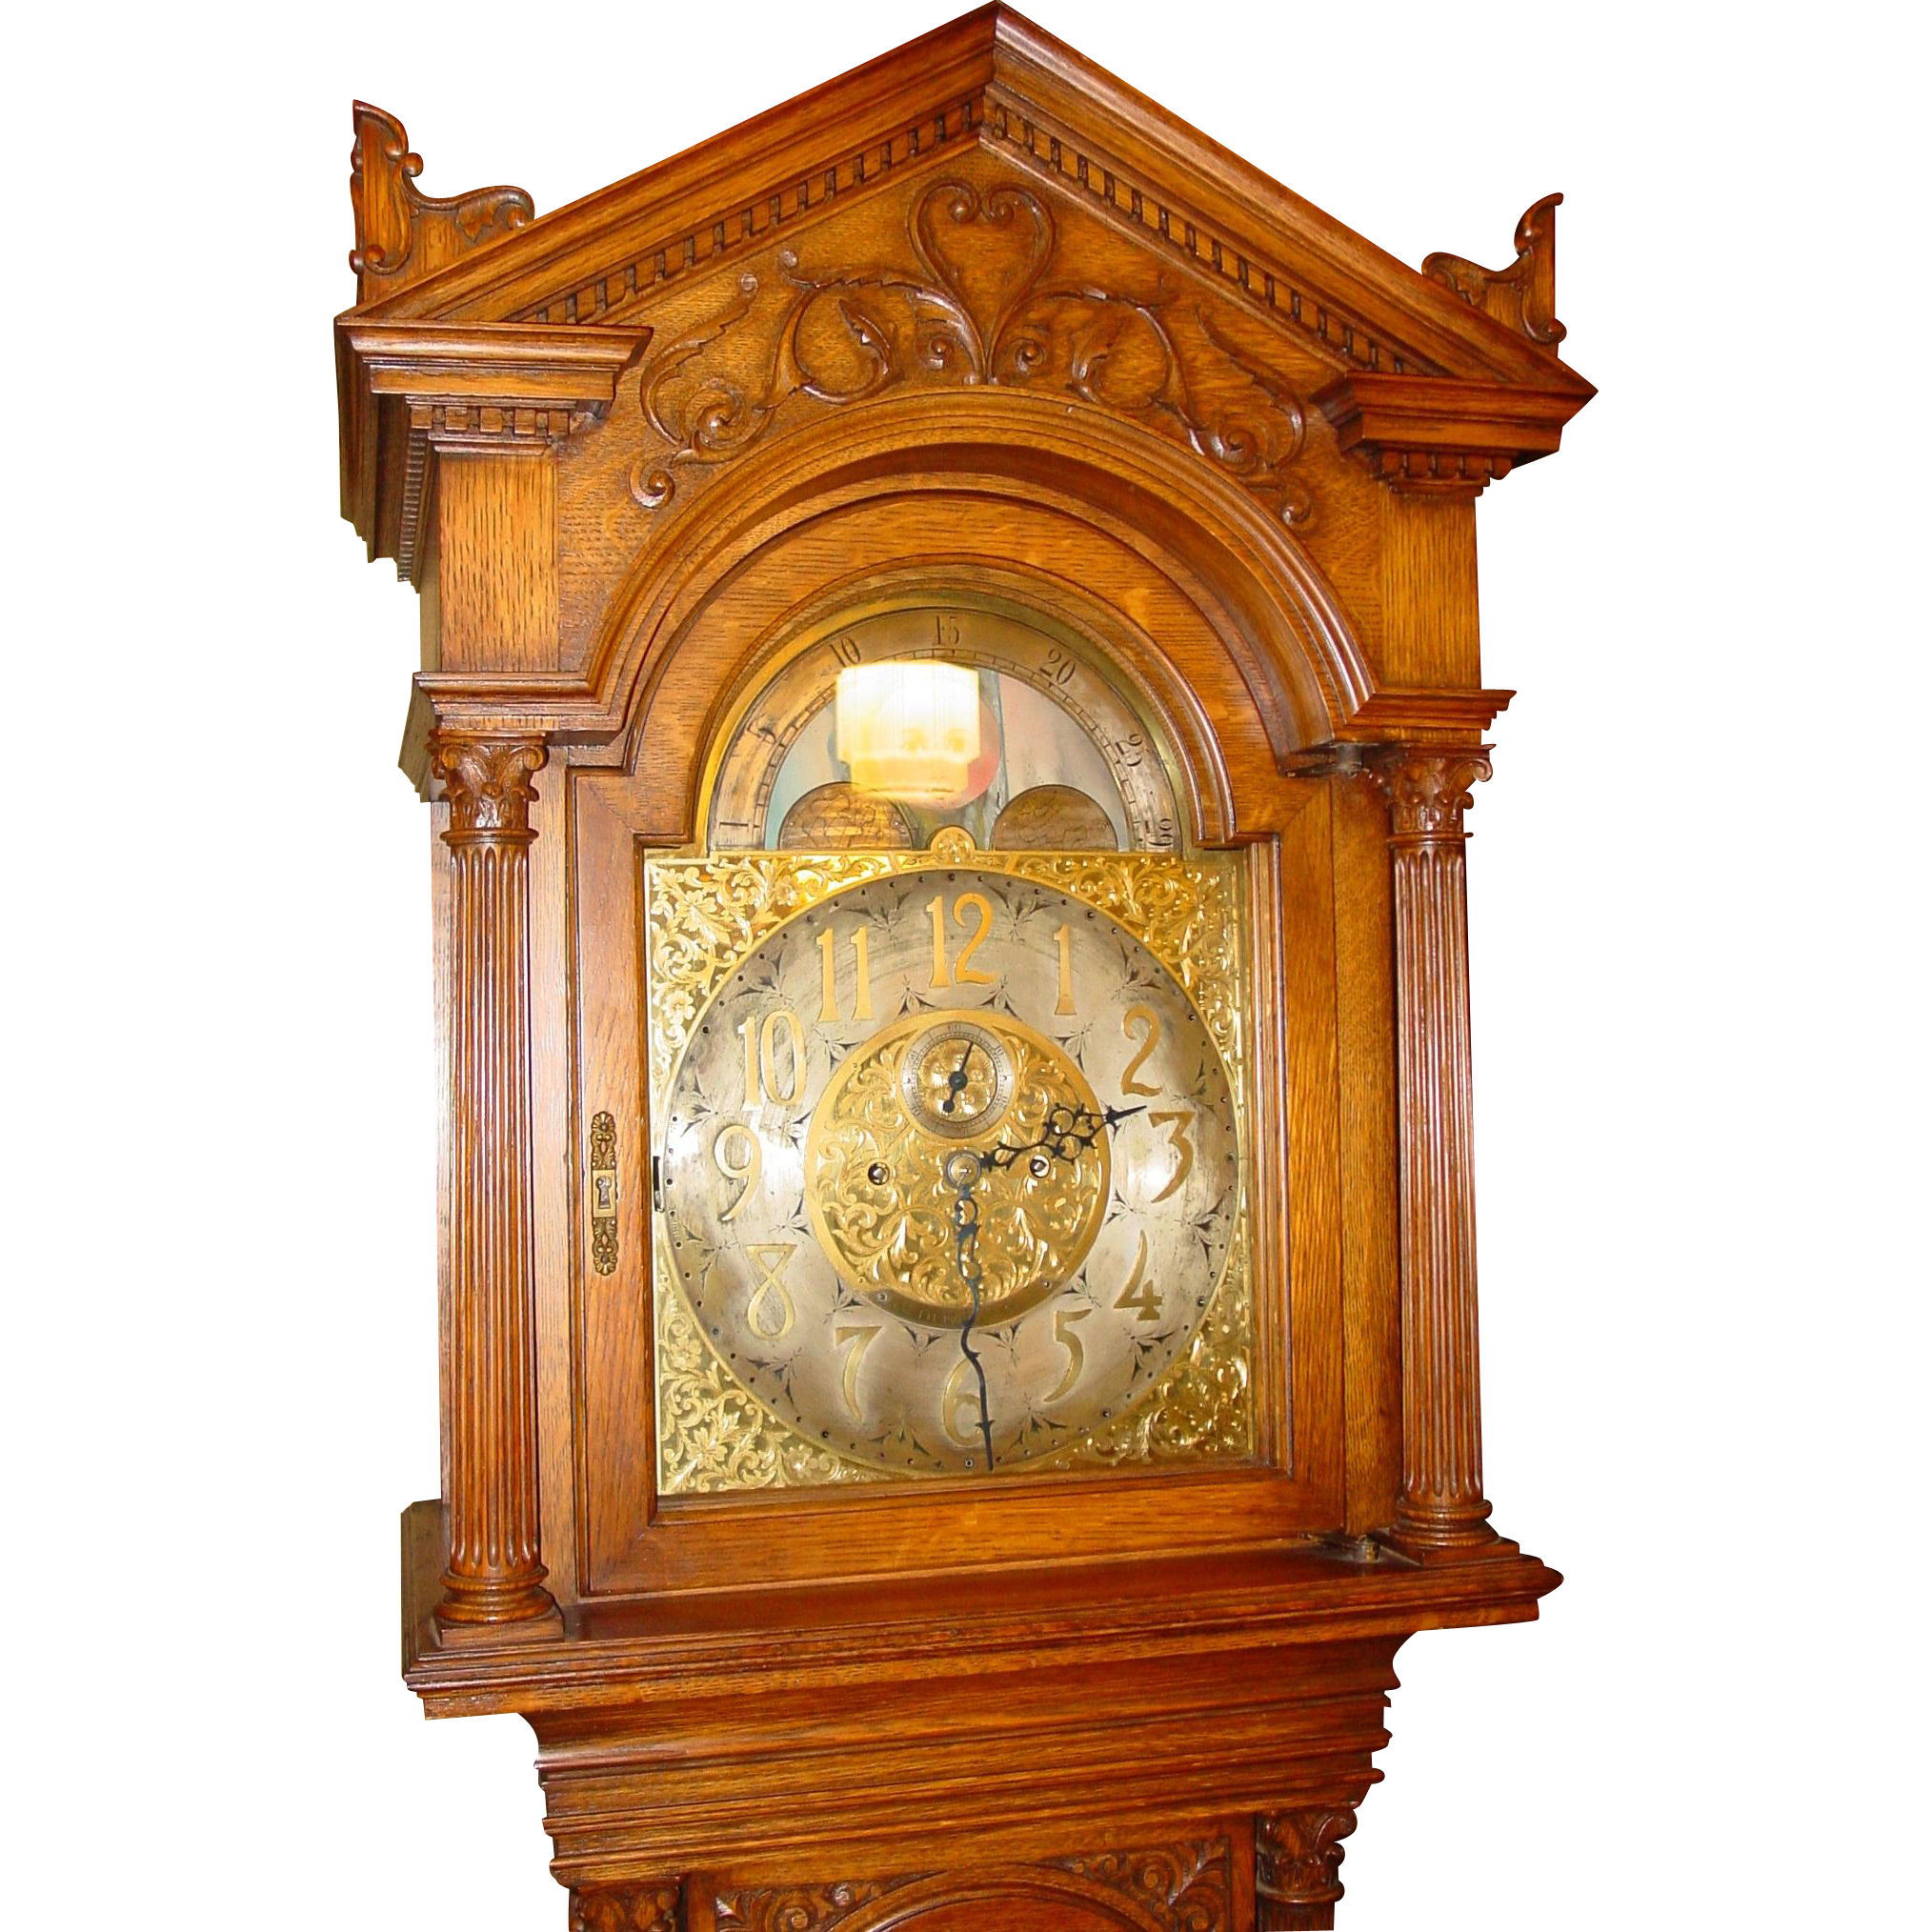 Superior oak tall case grandfather clock  Tiffany--moon dial--Elliot movement